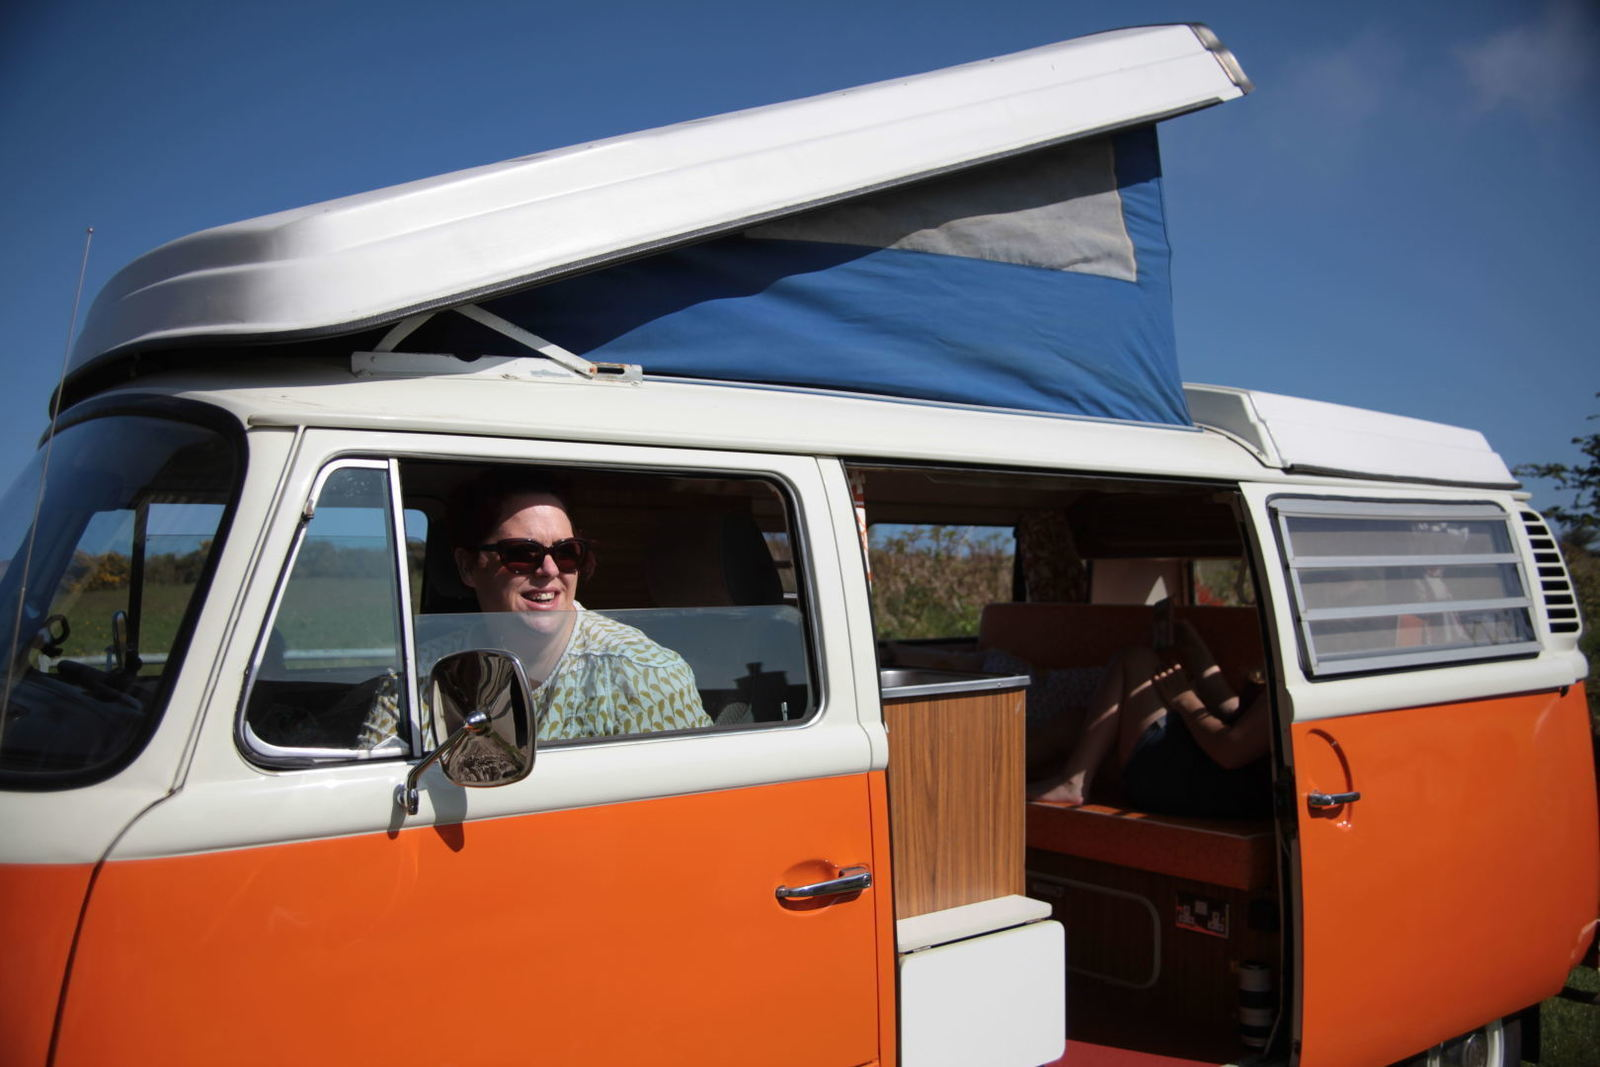 Campervan For Hire In Falmouth From 70 00 Blossom Classic Vw Camper Van Hire In Cornwall Camplify